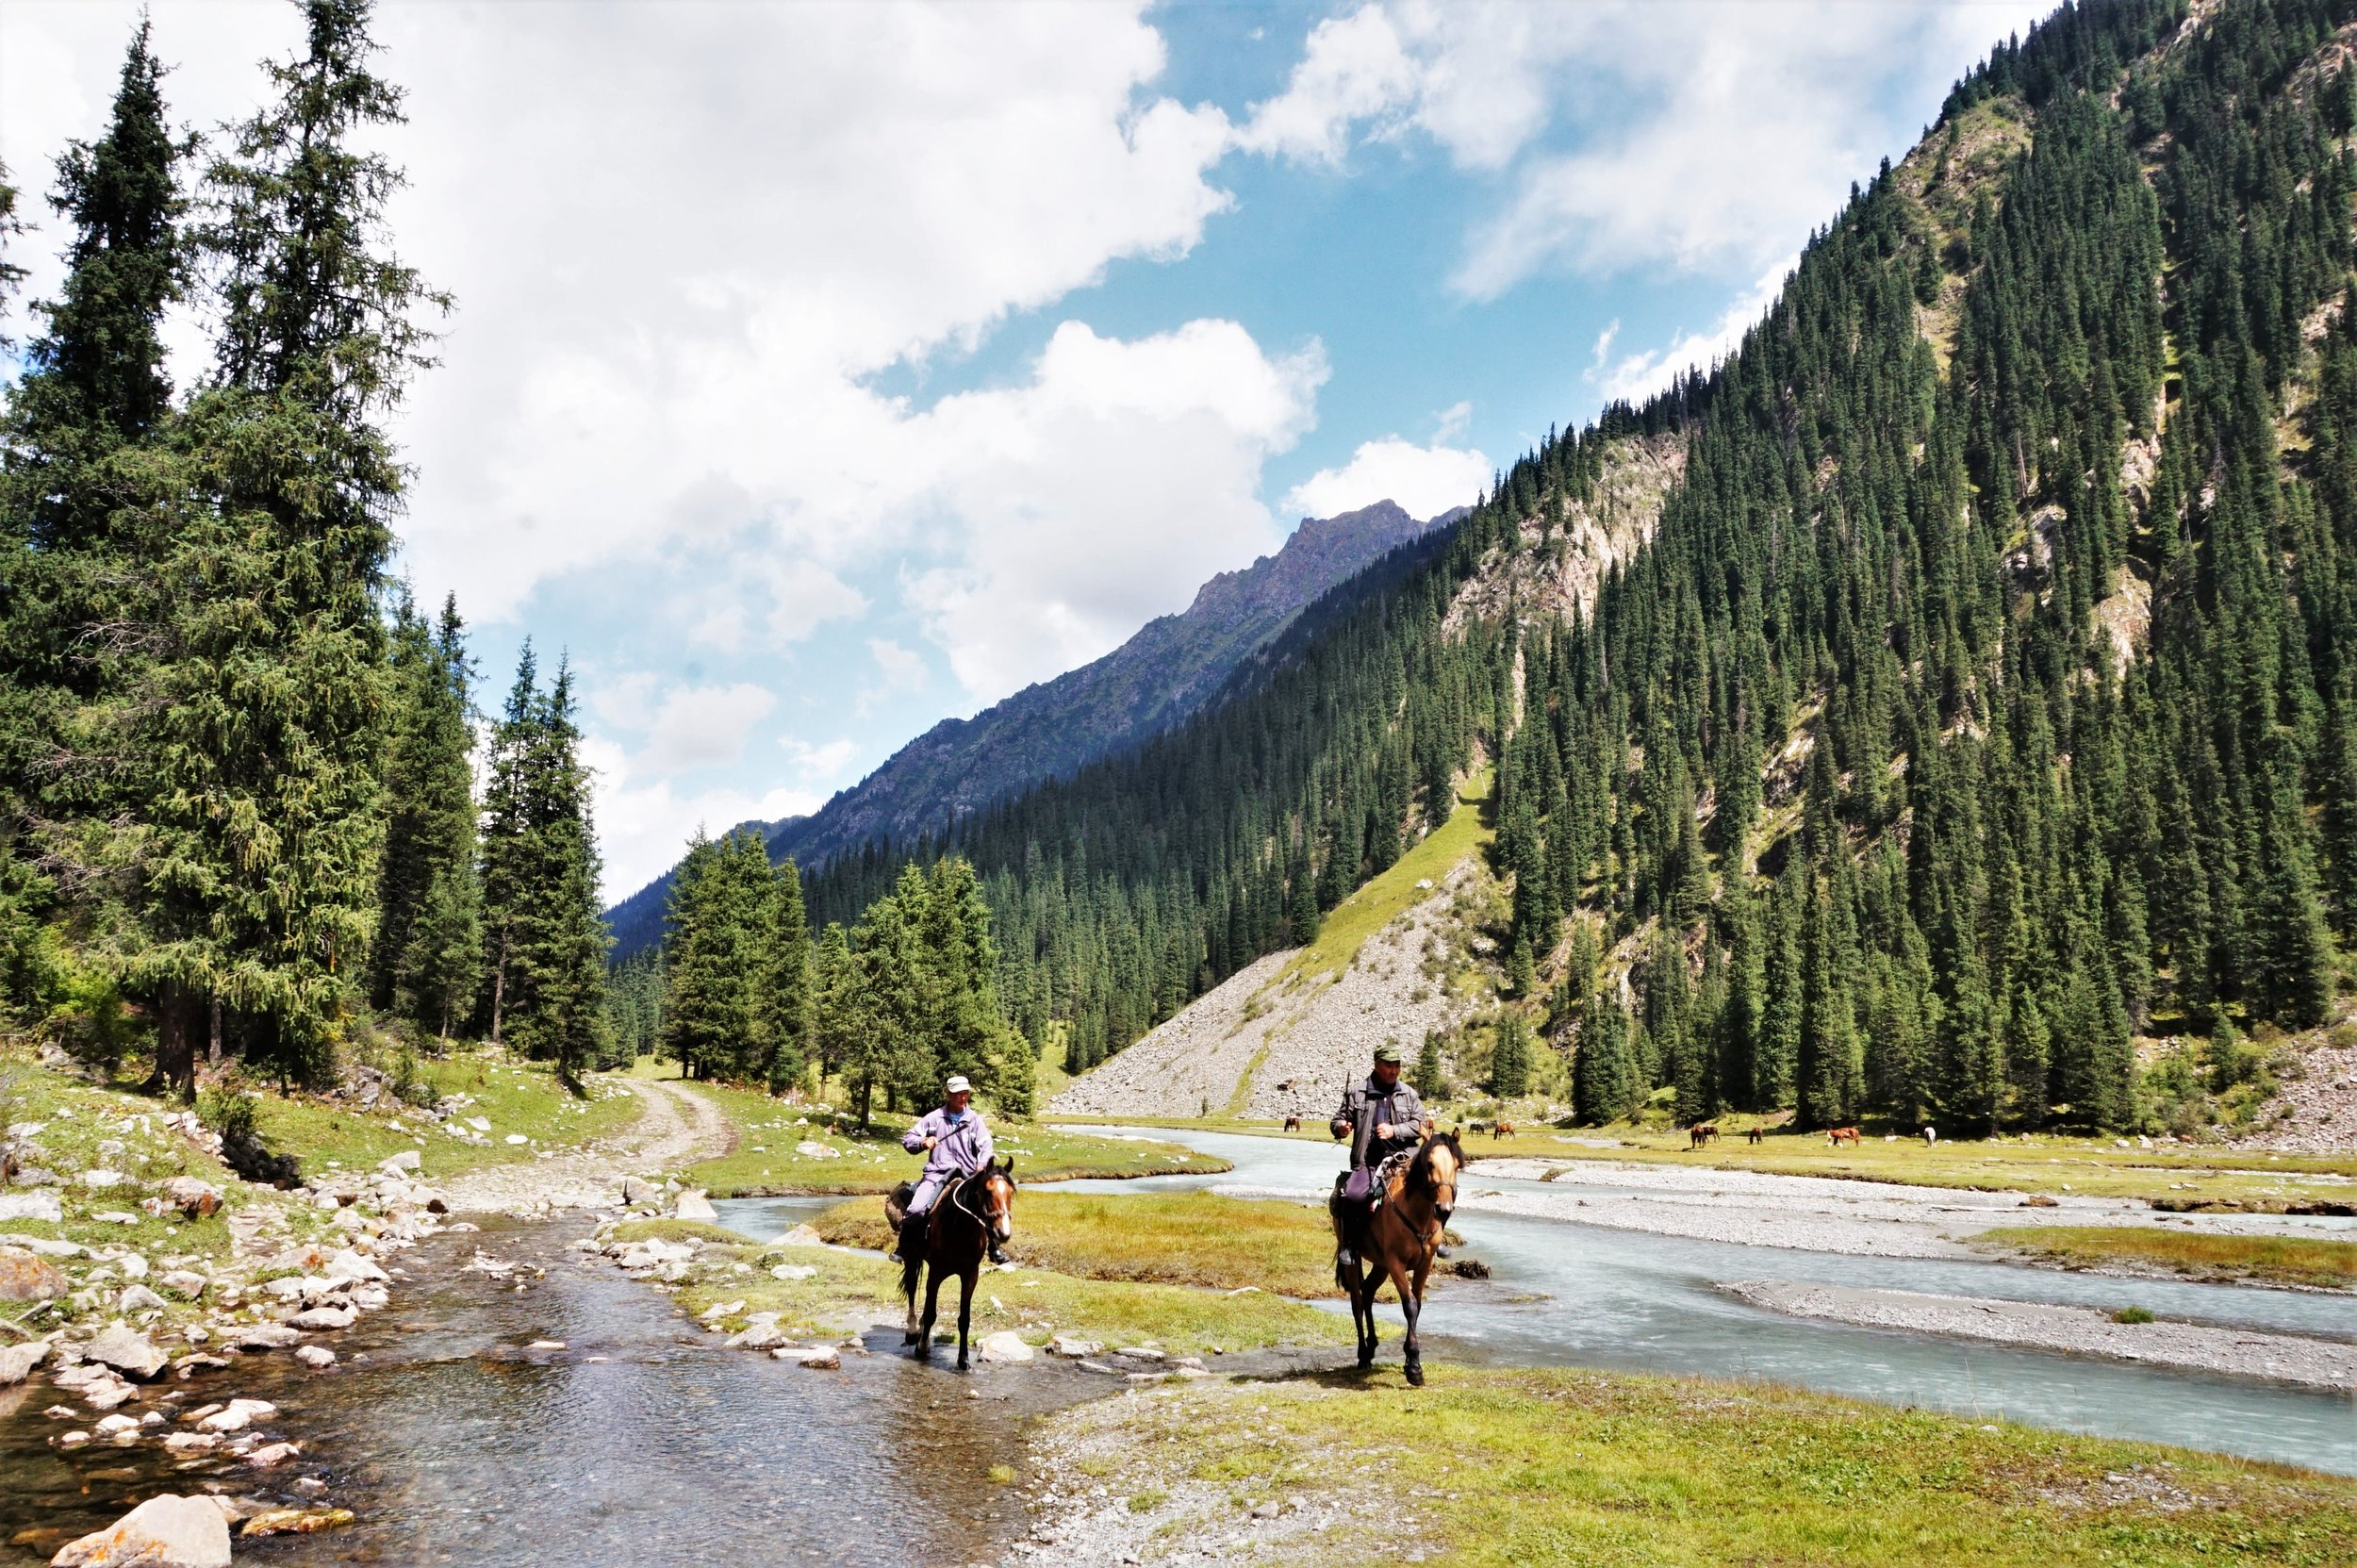 Horse trekking is an awesome things to do in Kyrgyzstan!